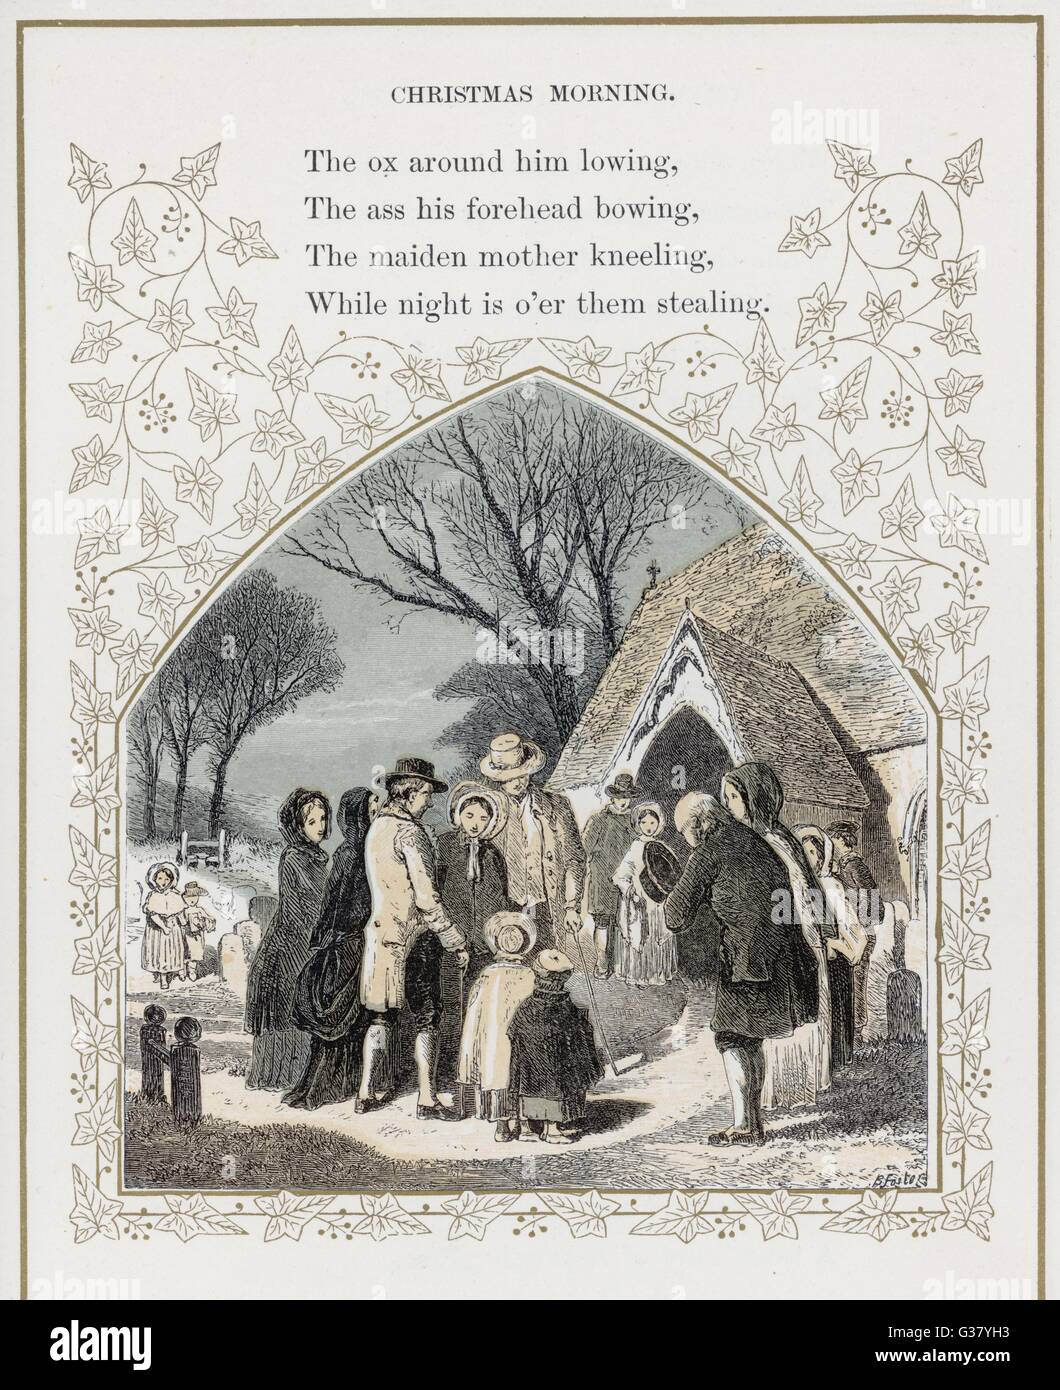 Country people greet one another outside the church porch on Christmas morning.     Date: 1869 - Stock Image